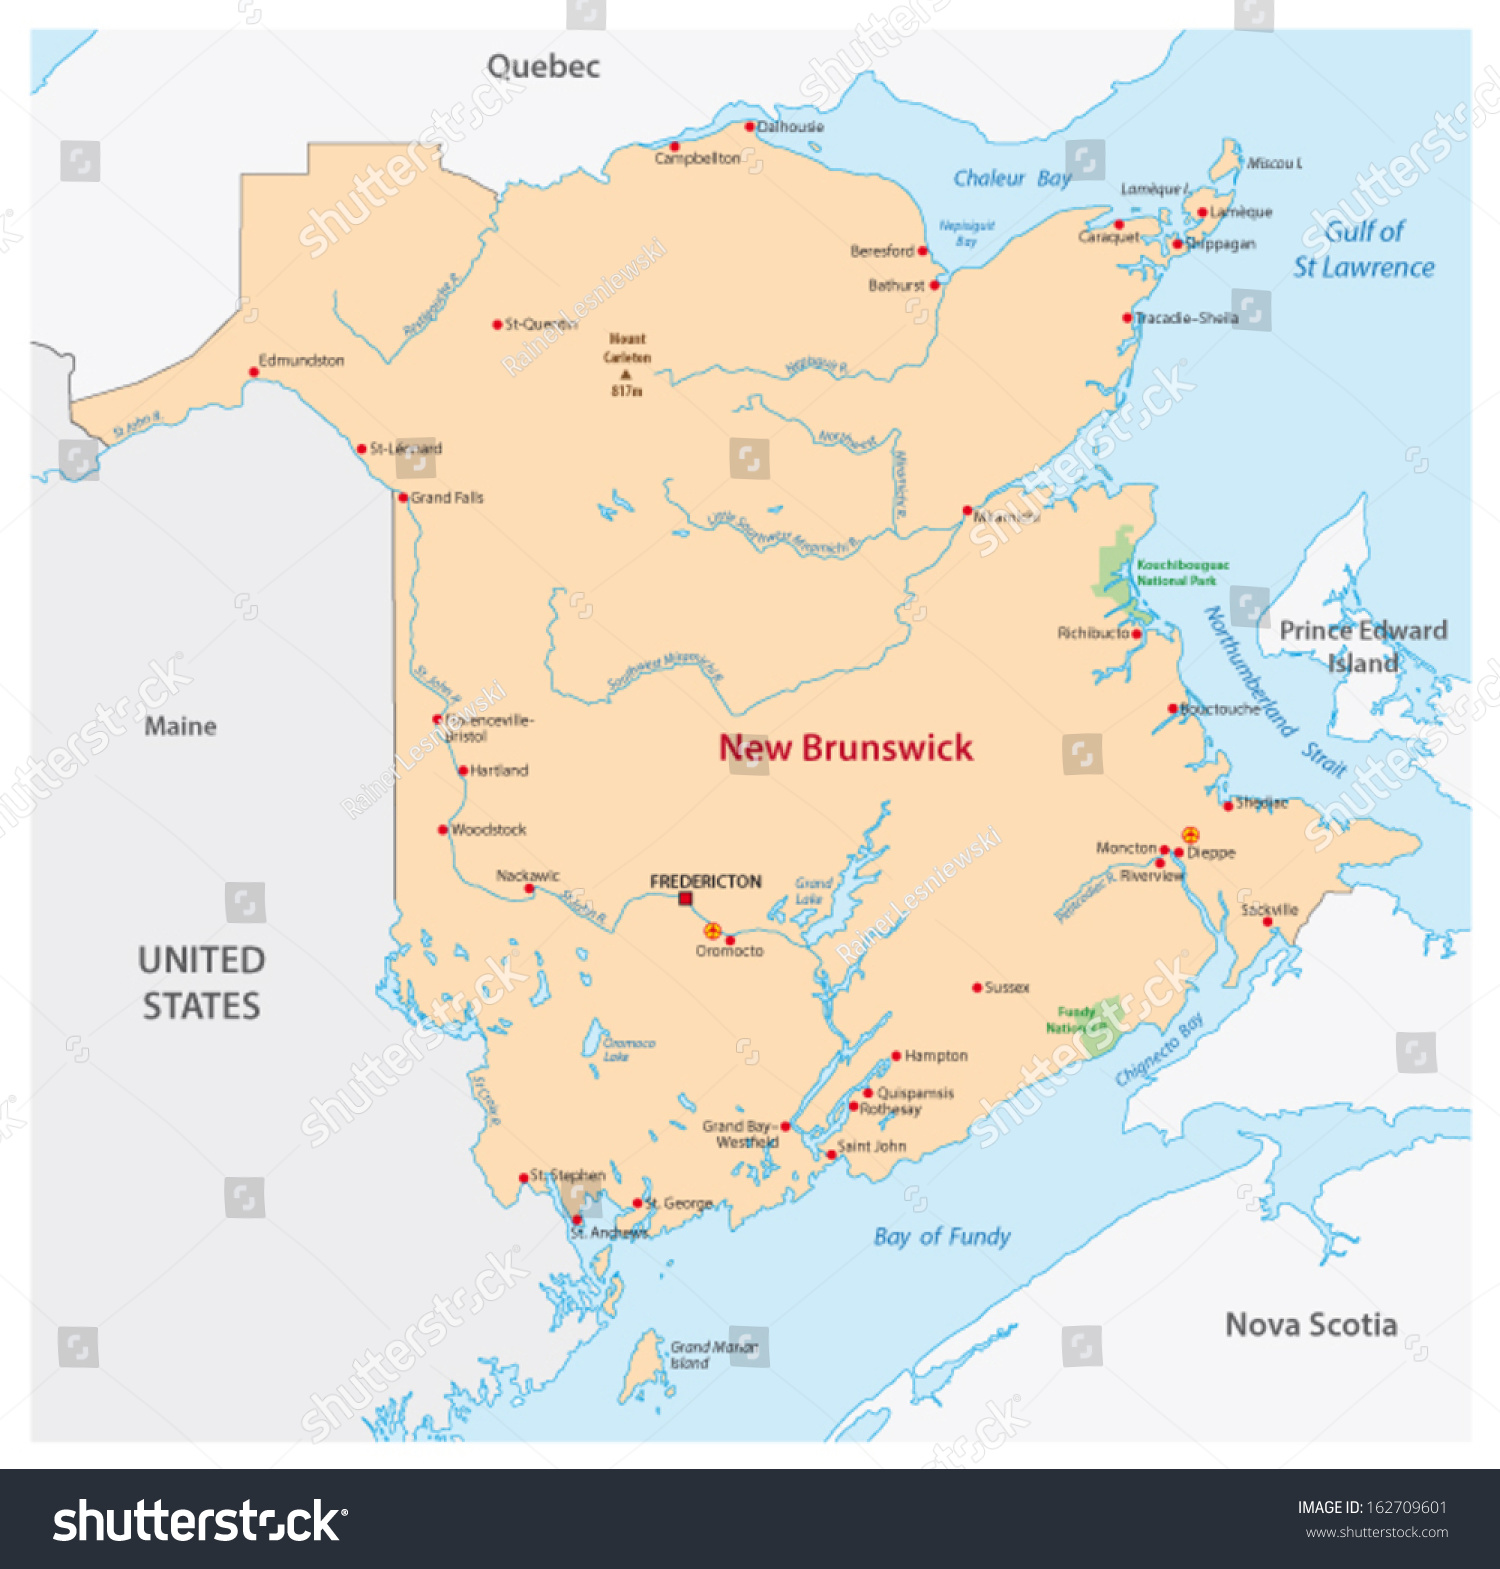 New Brunswick Canada Map Old School Rs Map Google My Map - Map of new brunswick canada